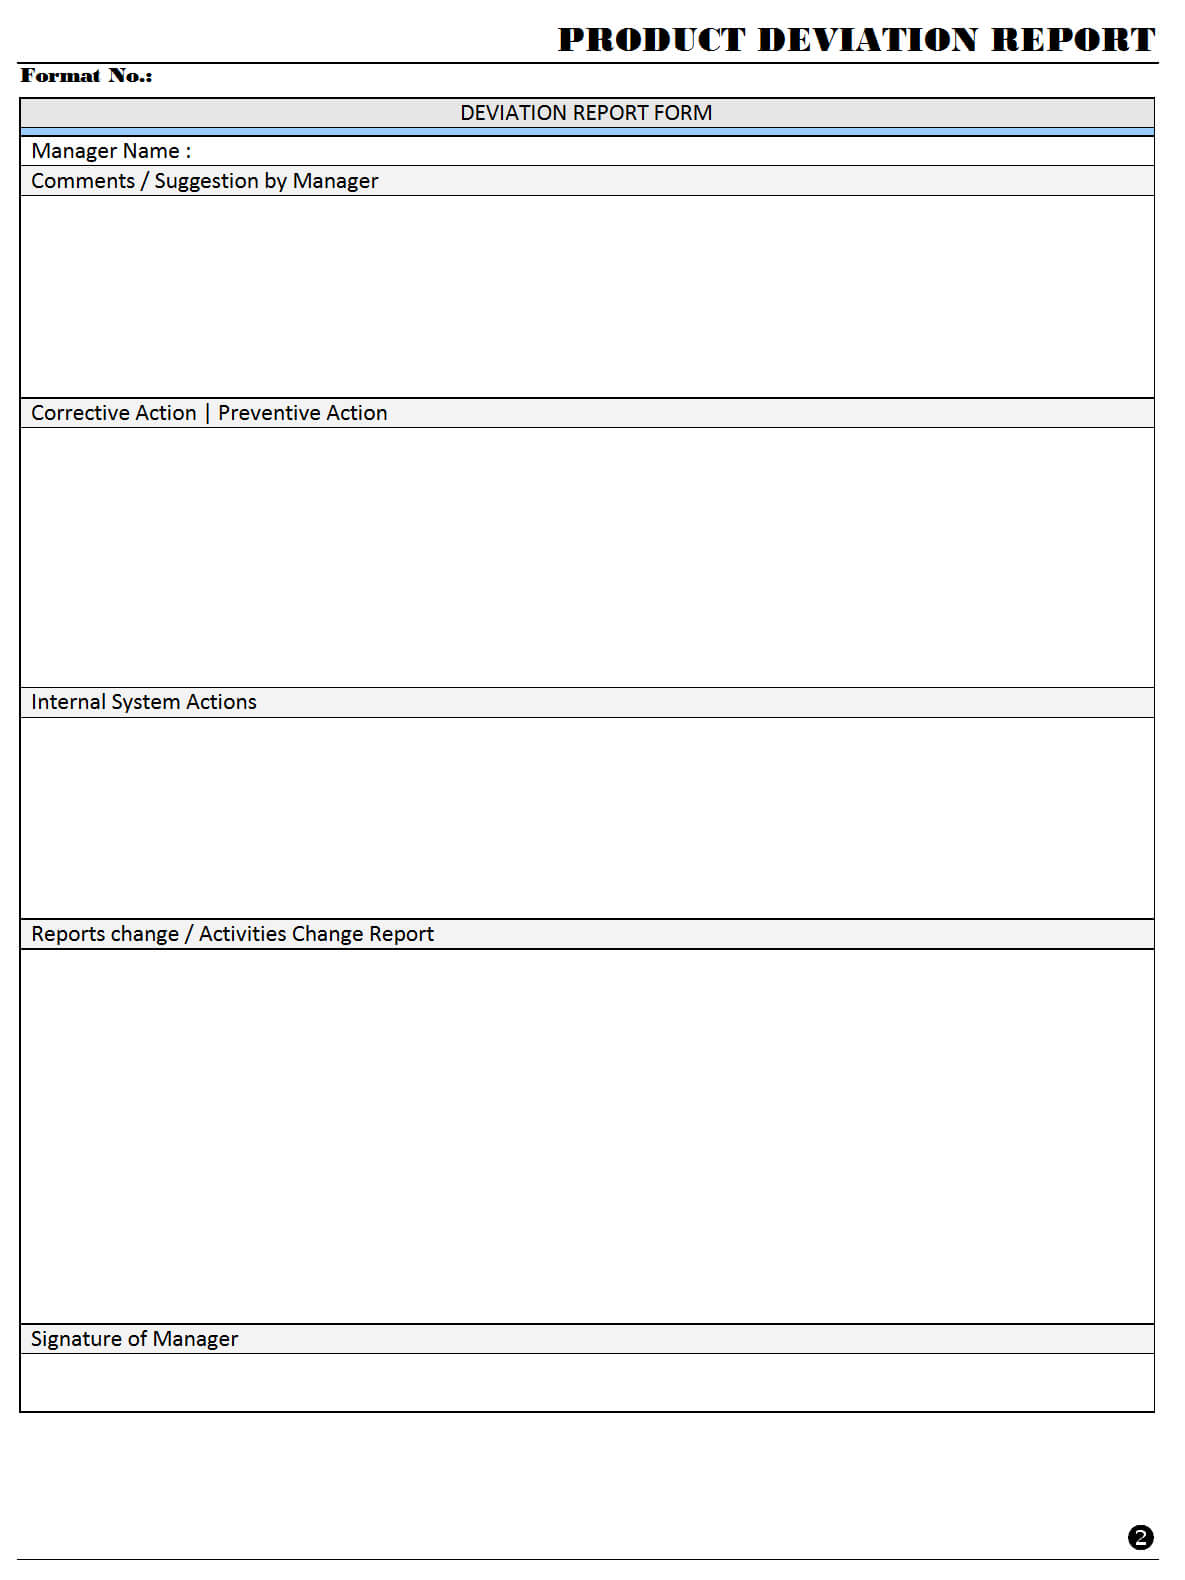 Product Deviation Report - in Deviation Report Template